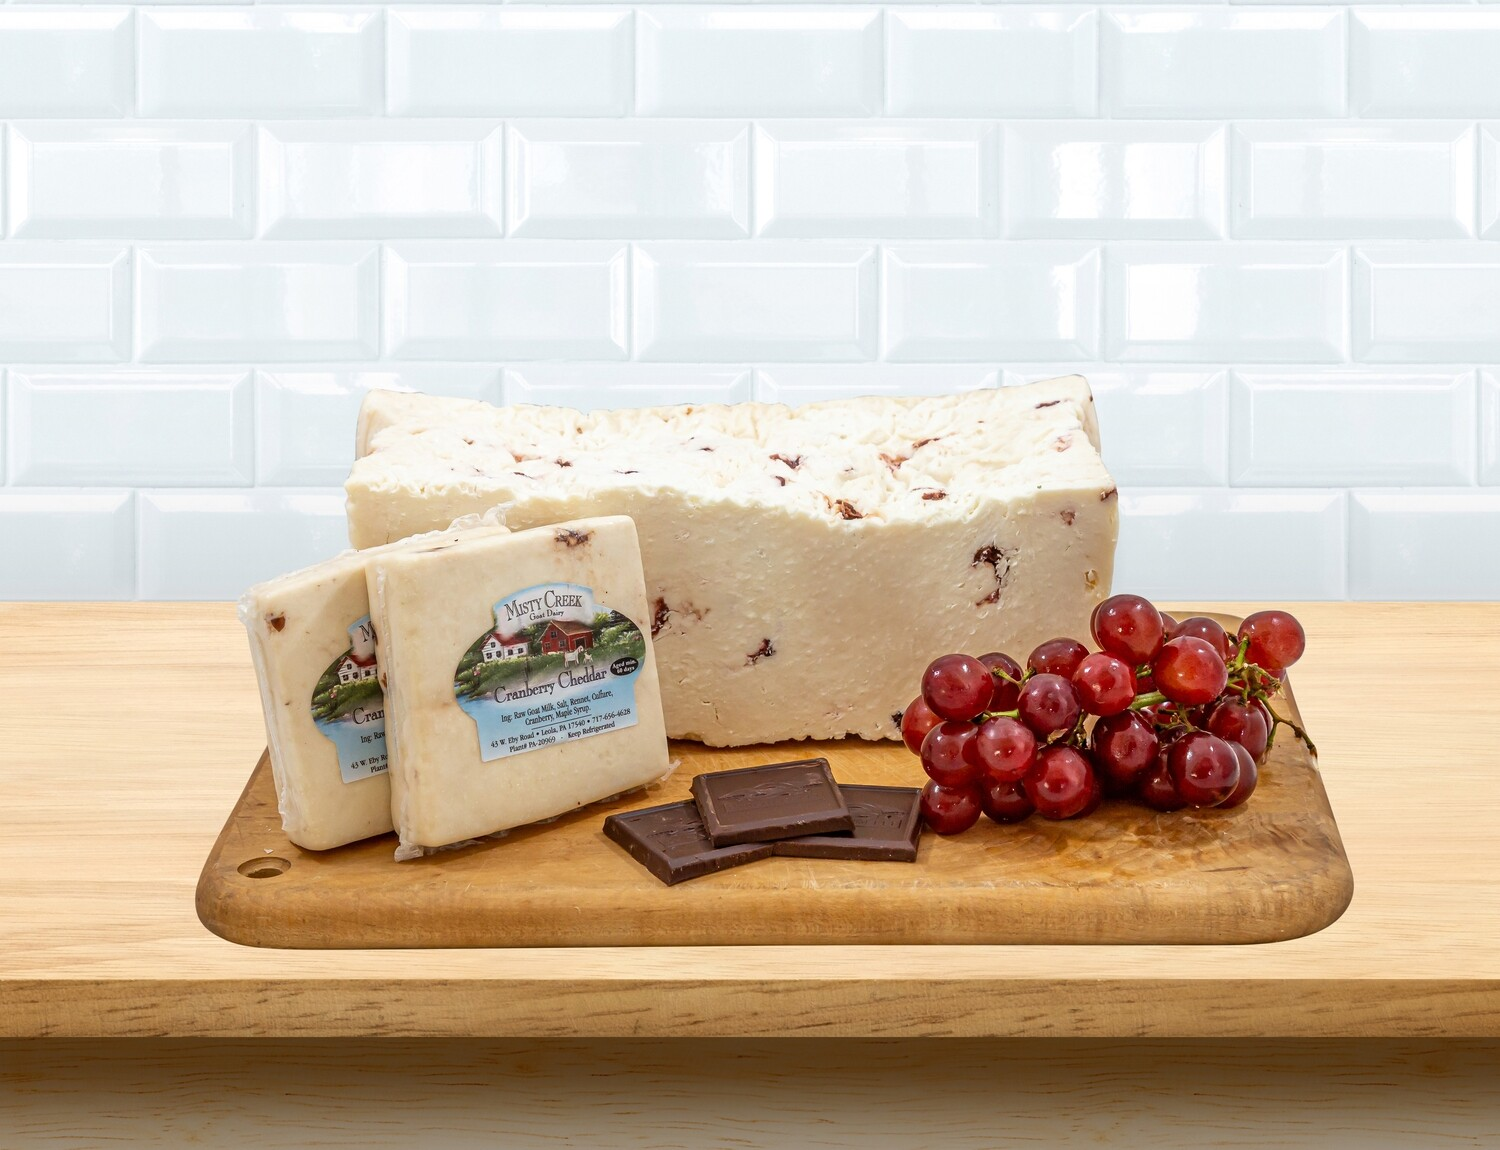 Cranberry Cheddar from Sunset Farm